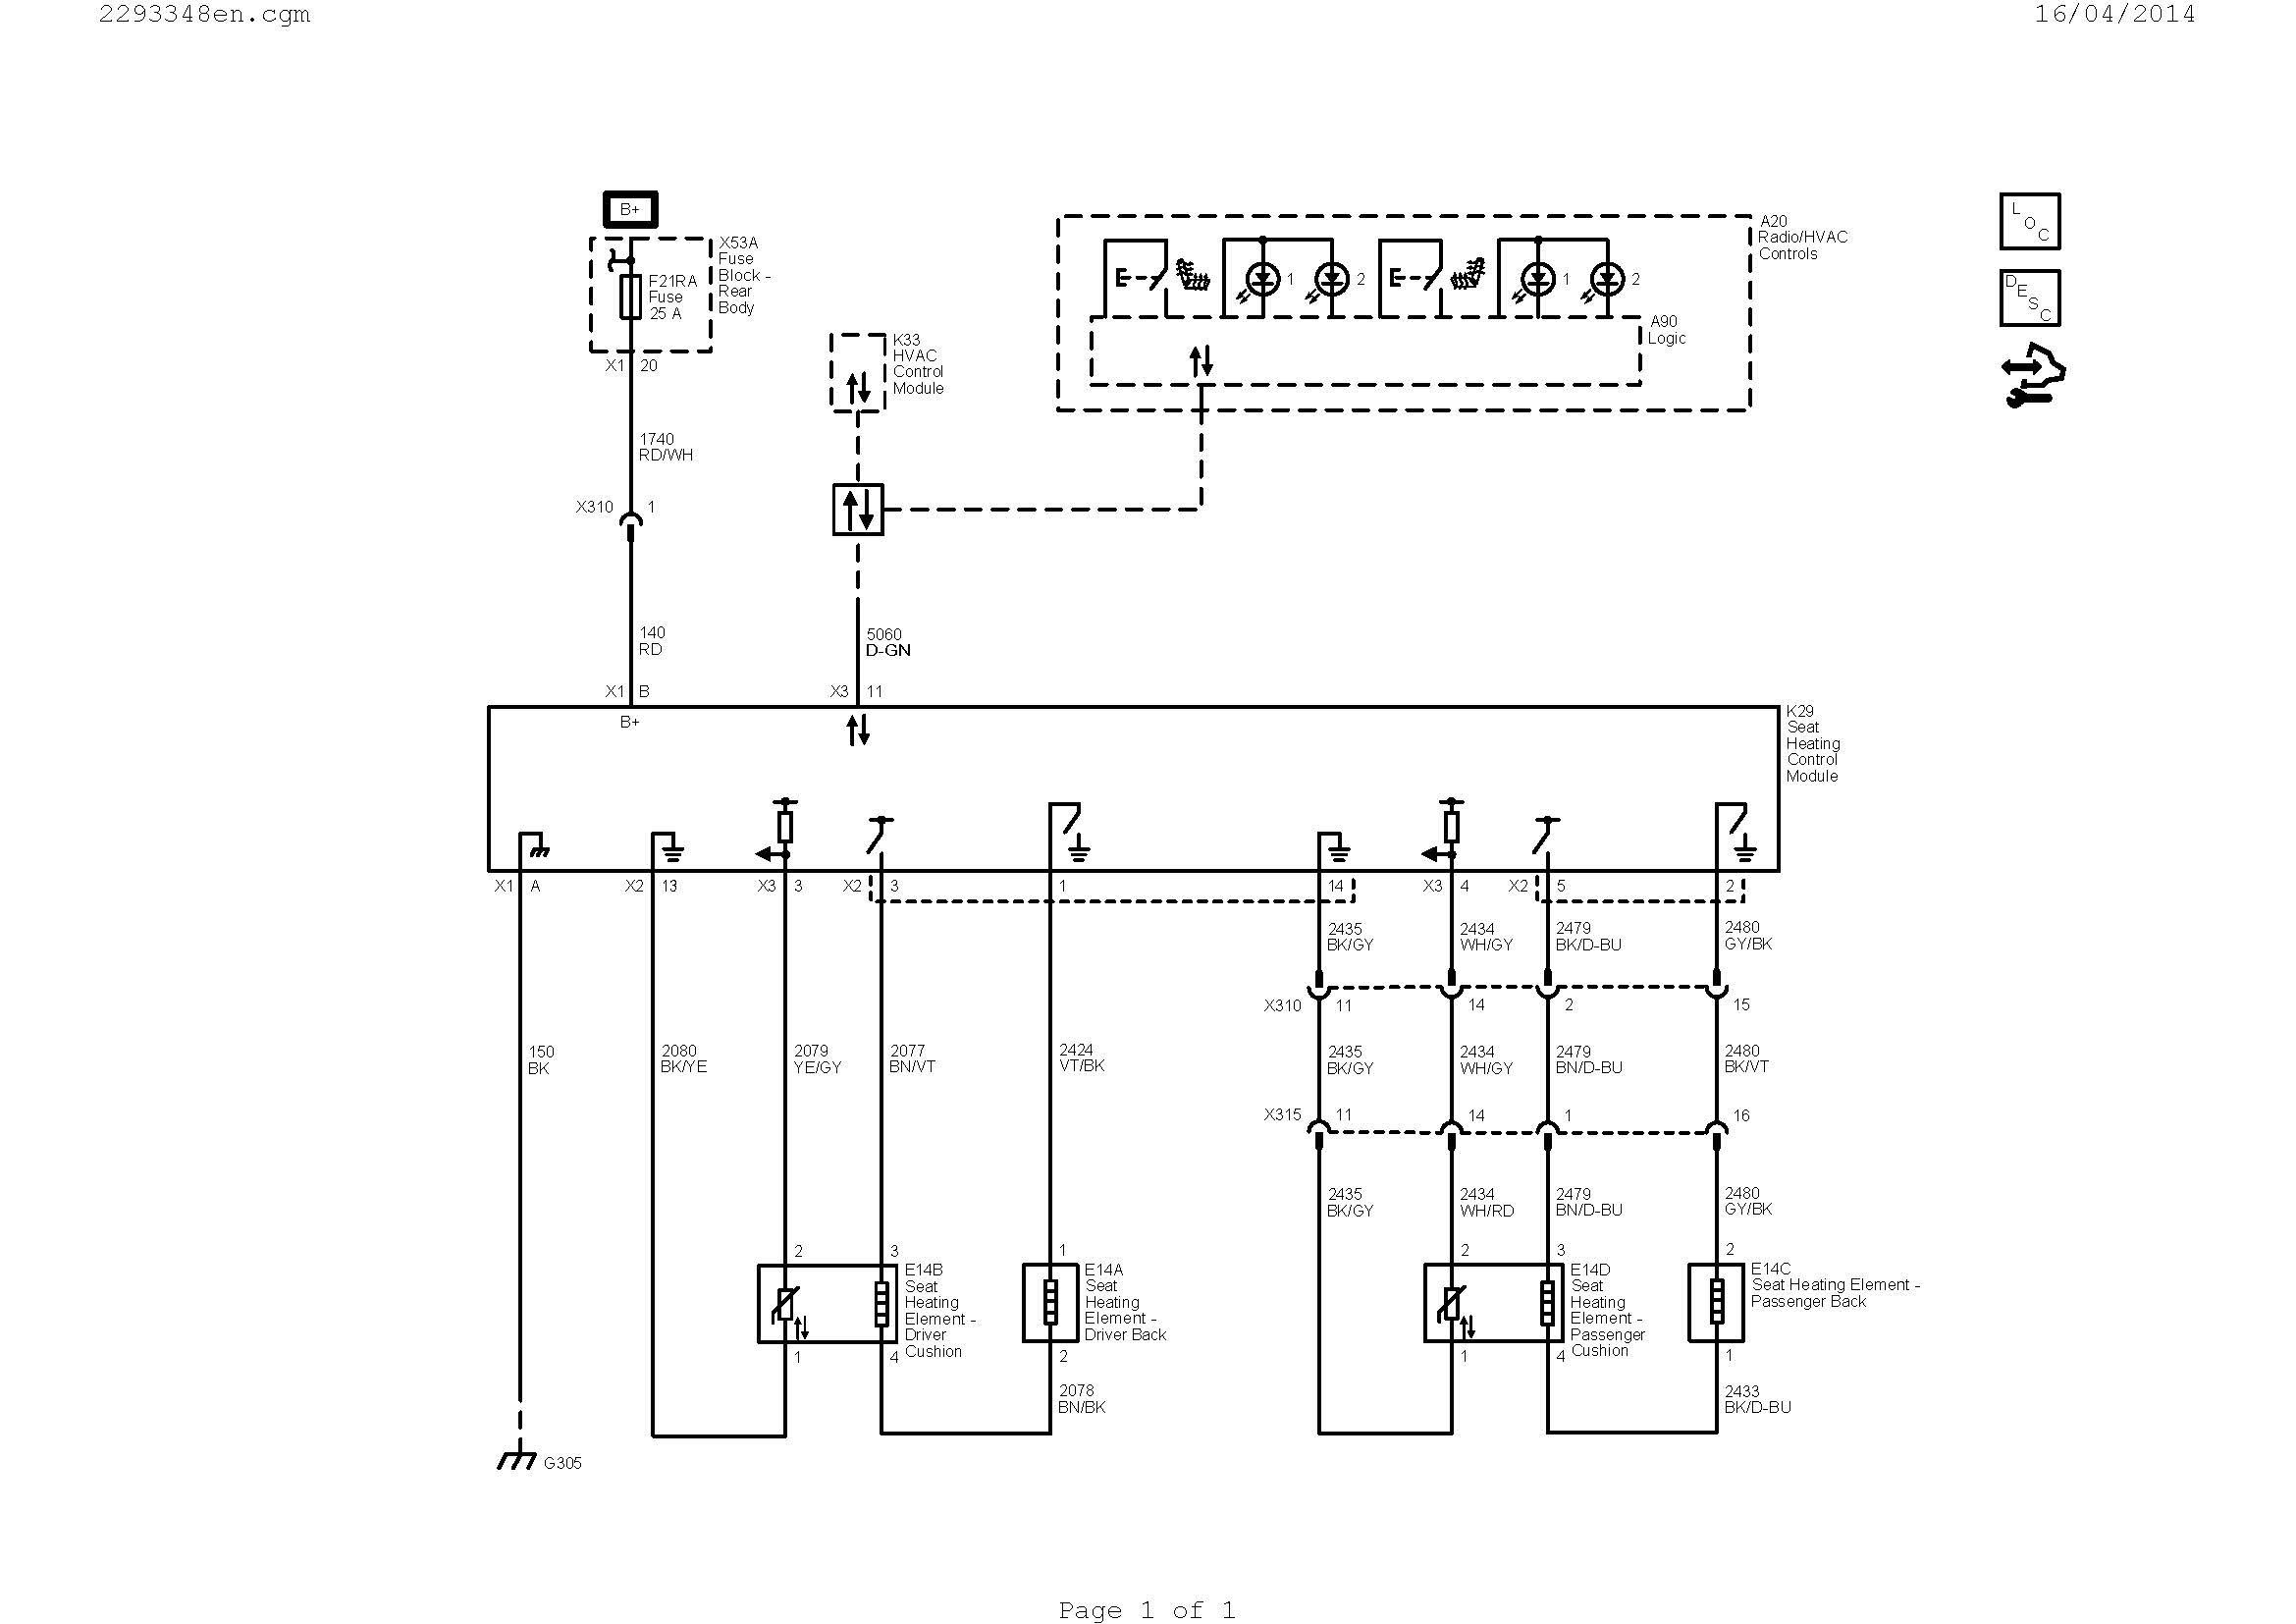 fujitsu mini split heat pump wiring diagram Download-New Wiring Diagram Car Ac 17-e